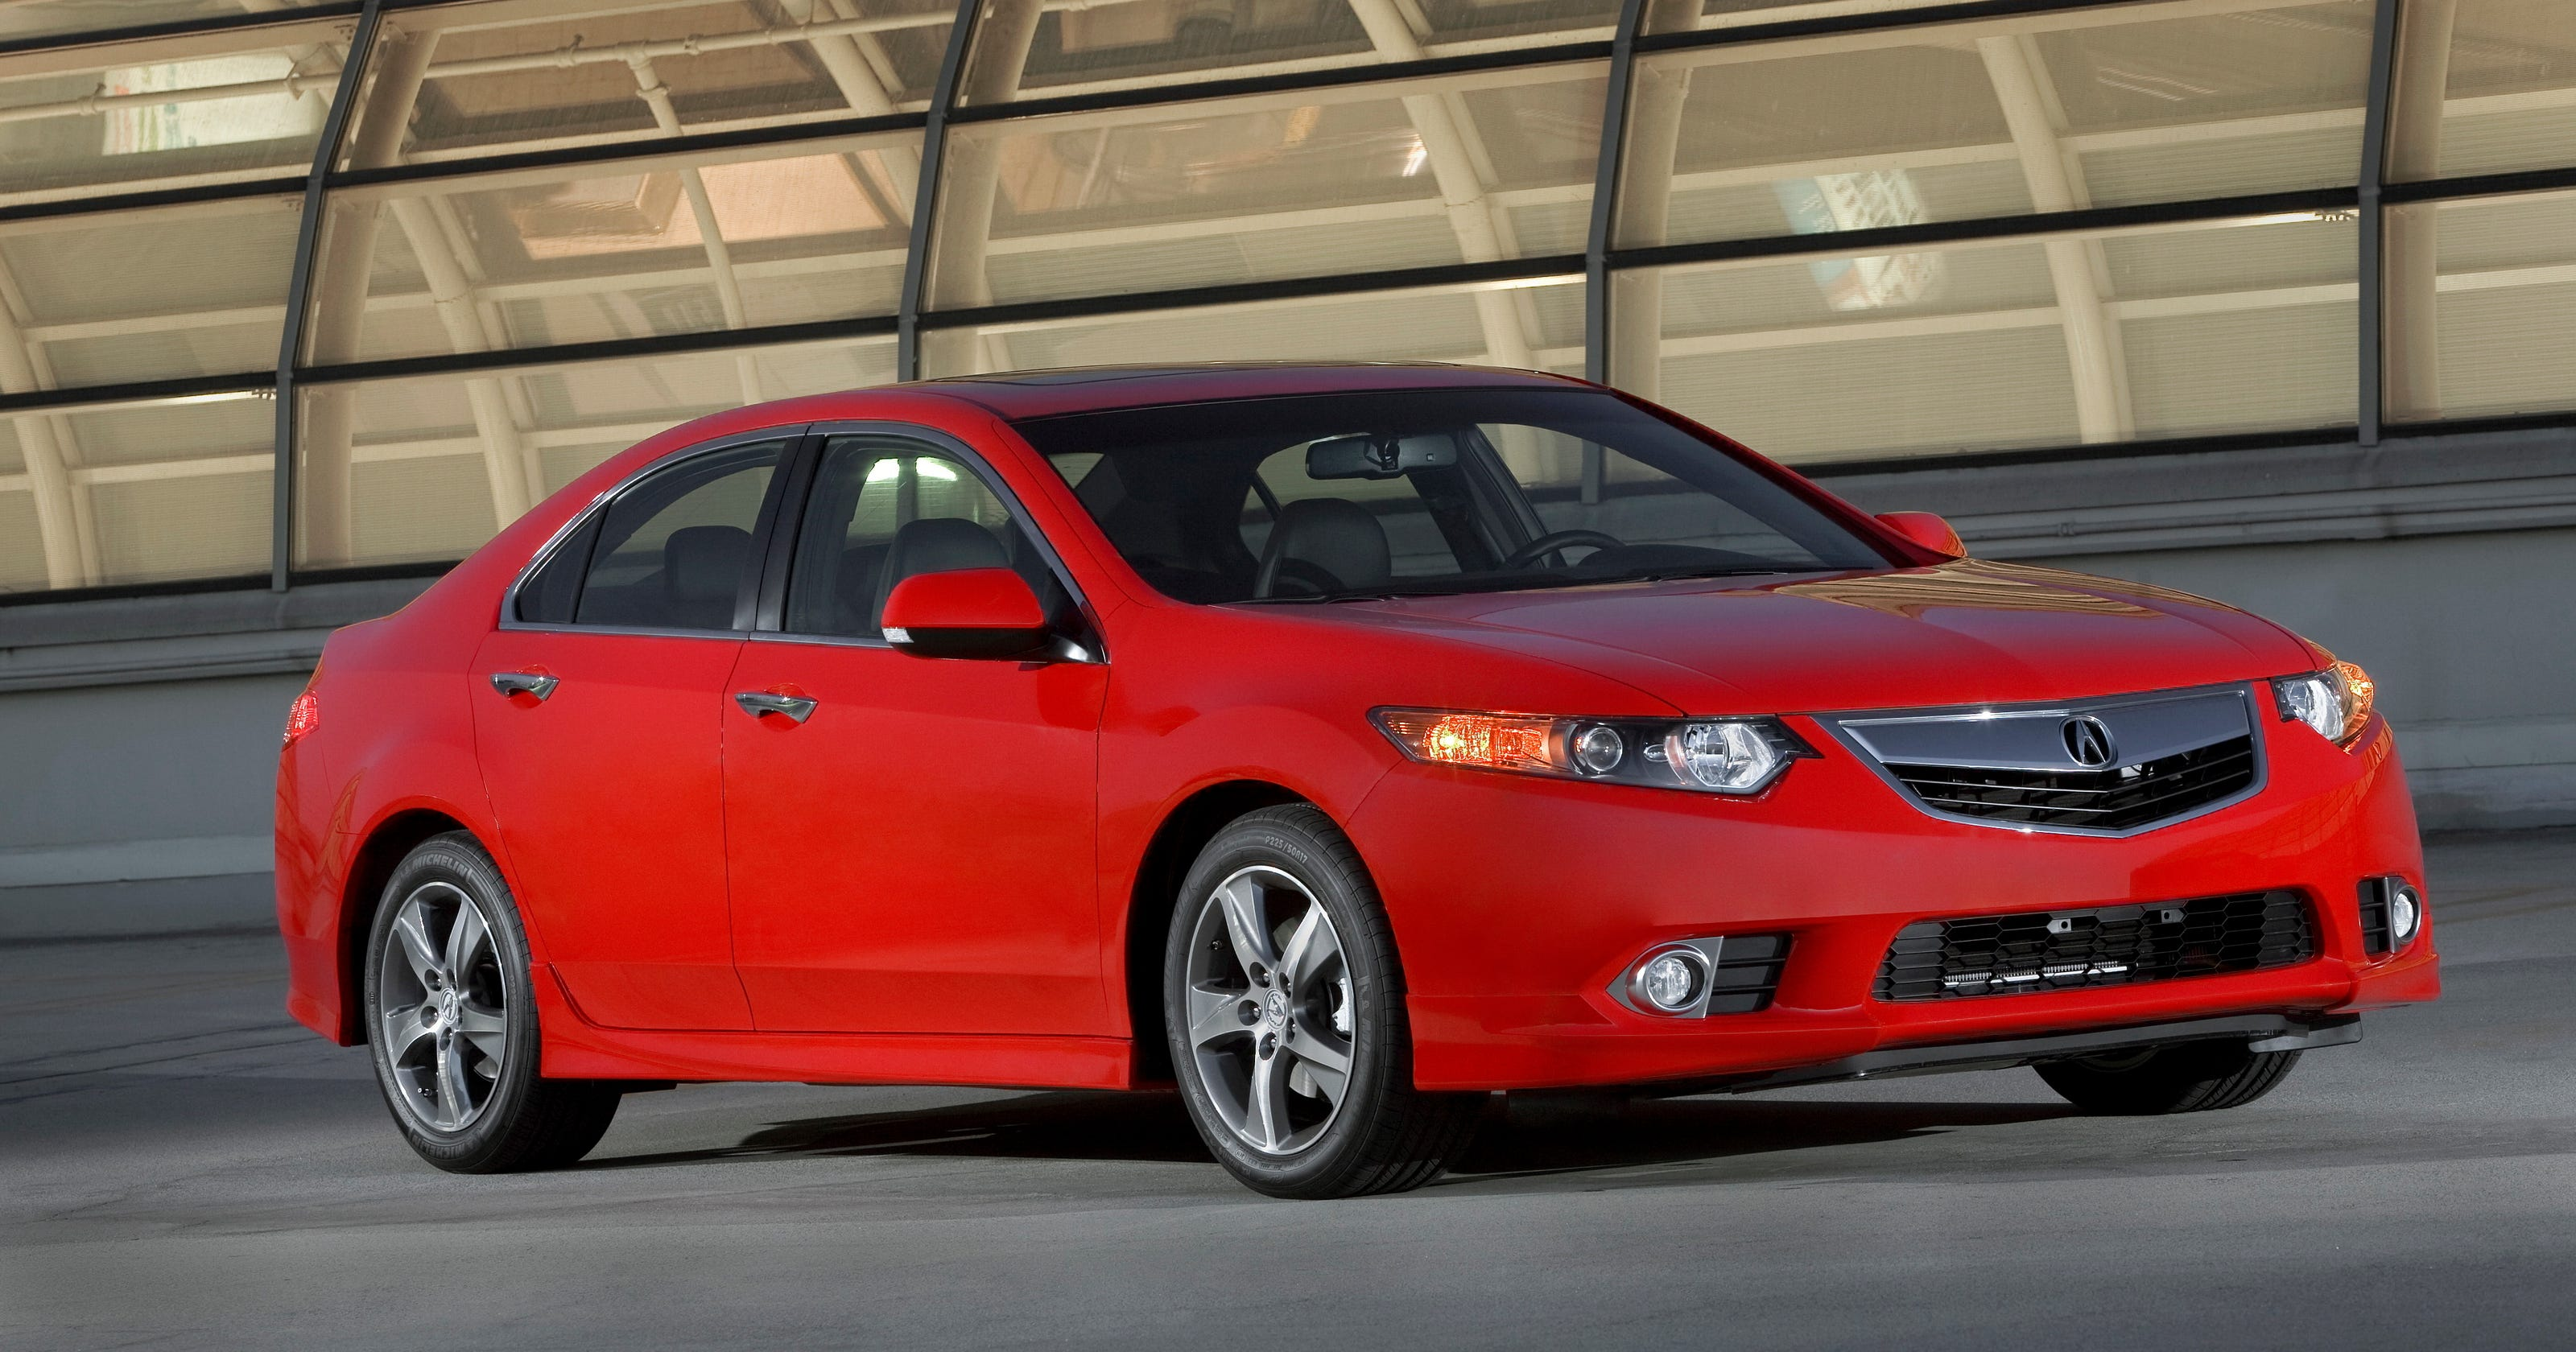 Edmunds recommends 15 used cars for under $15K